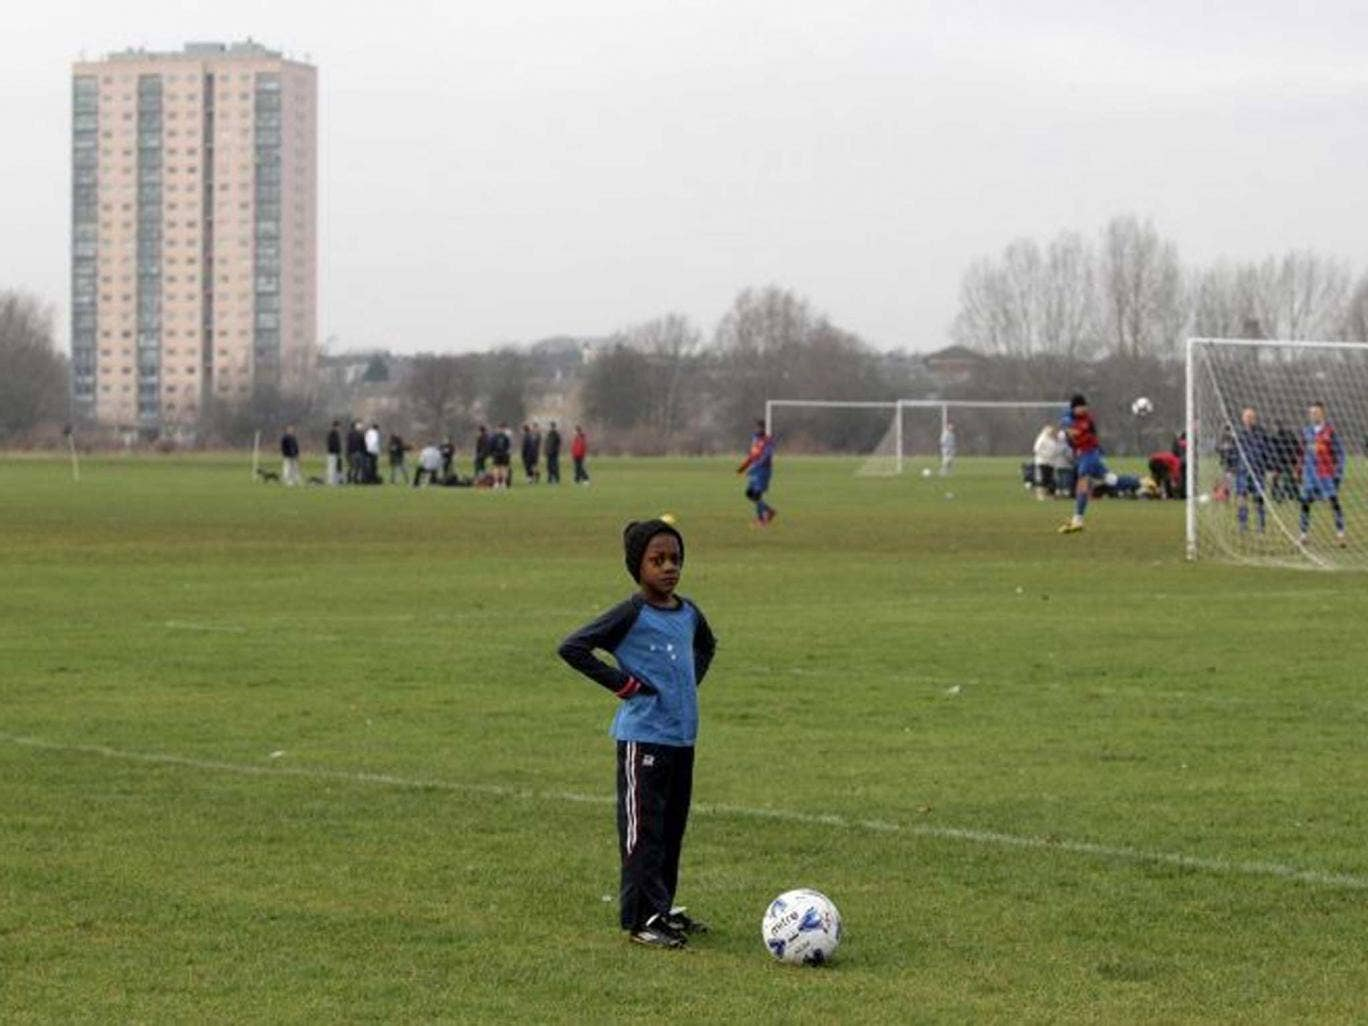 Home turf: The pitches of Hackney Marshes, where David Beckham honed his skills, have long been a home for amateur footballers